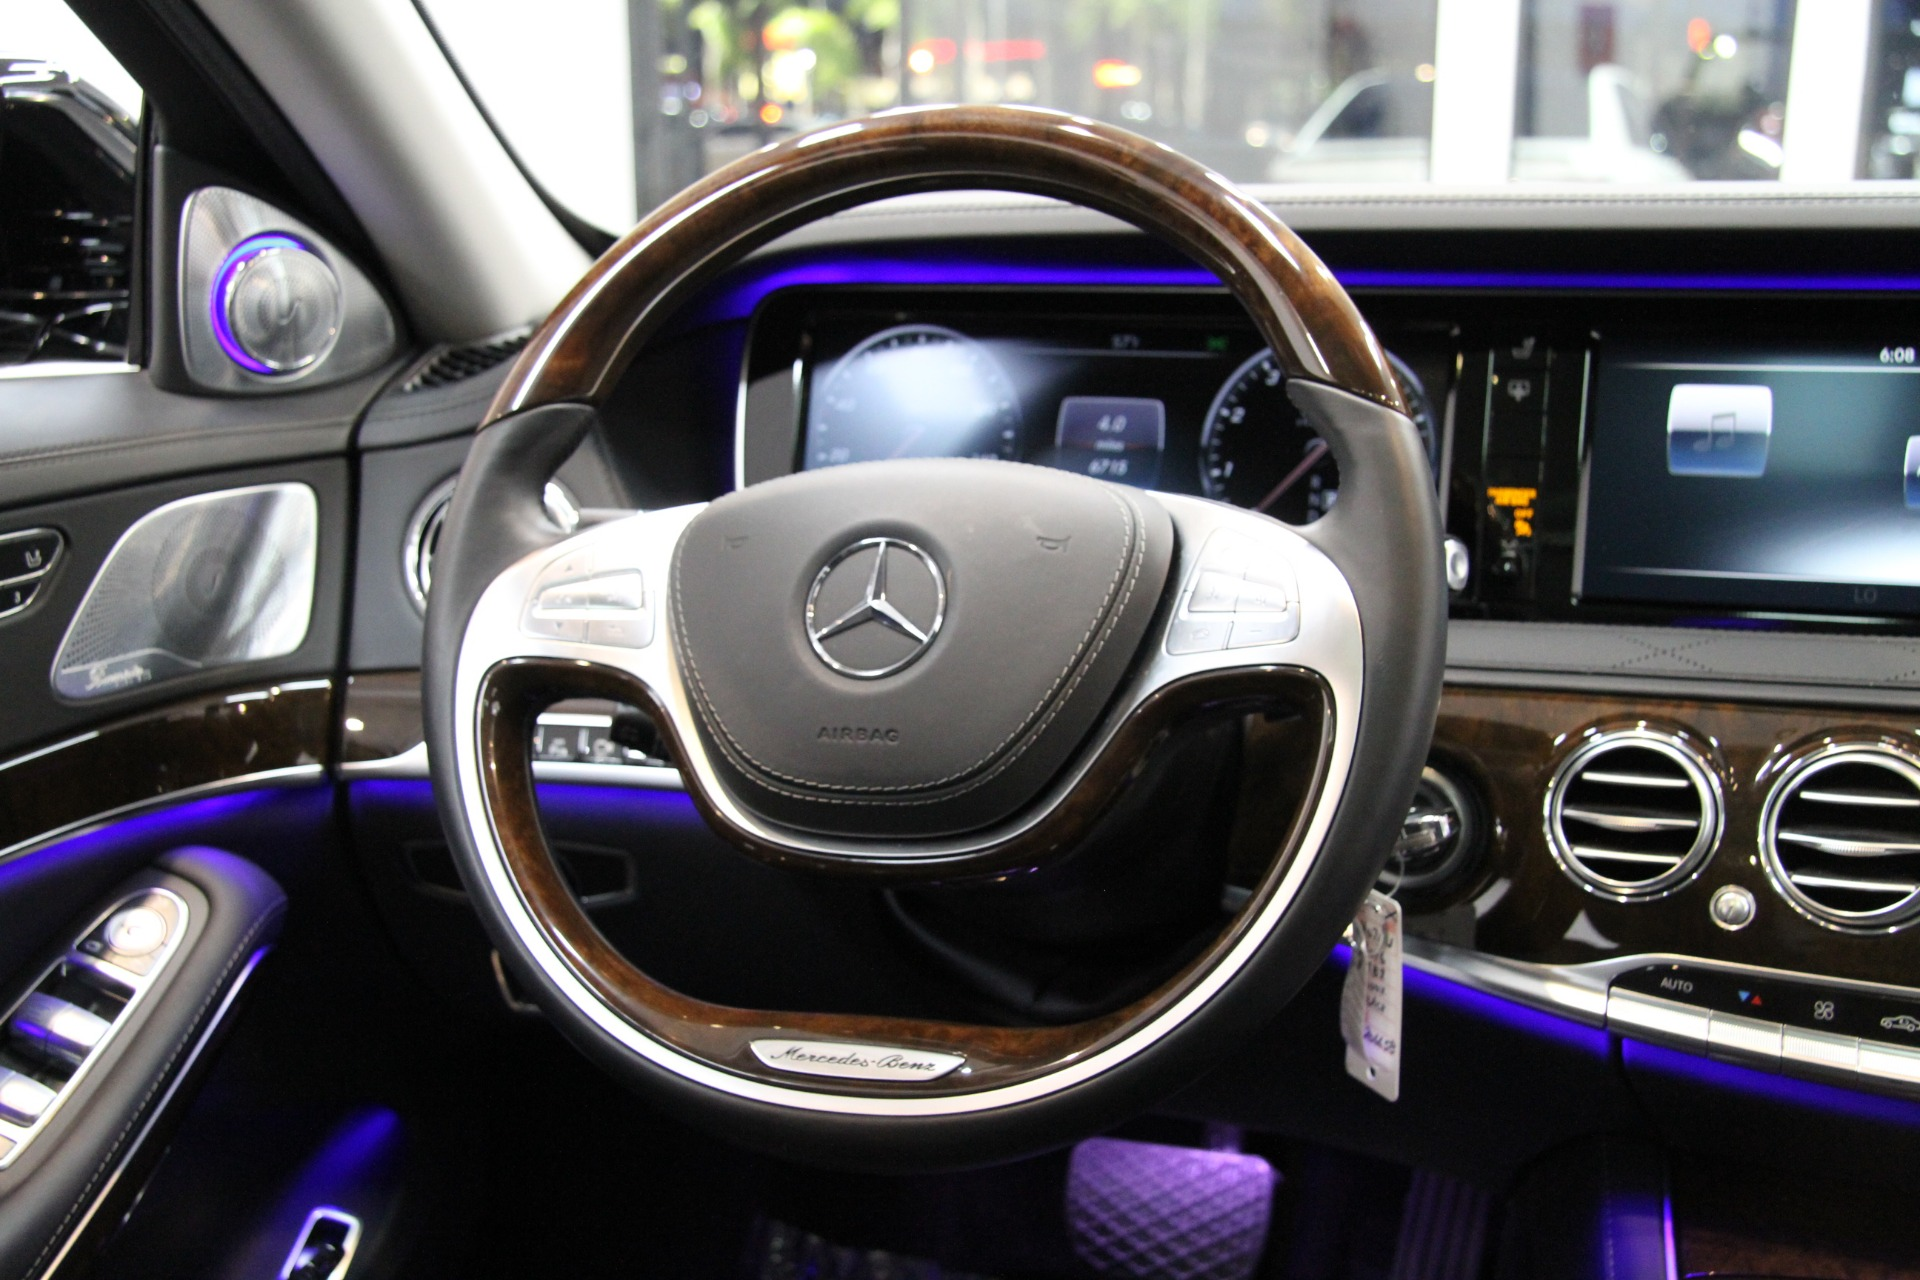 Used Mercedes Benz S Class For Sale Near Me